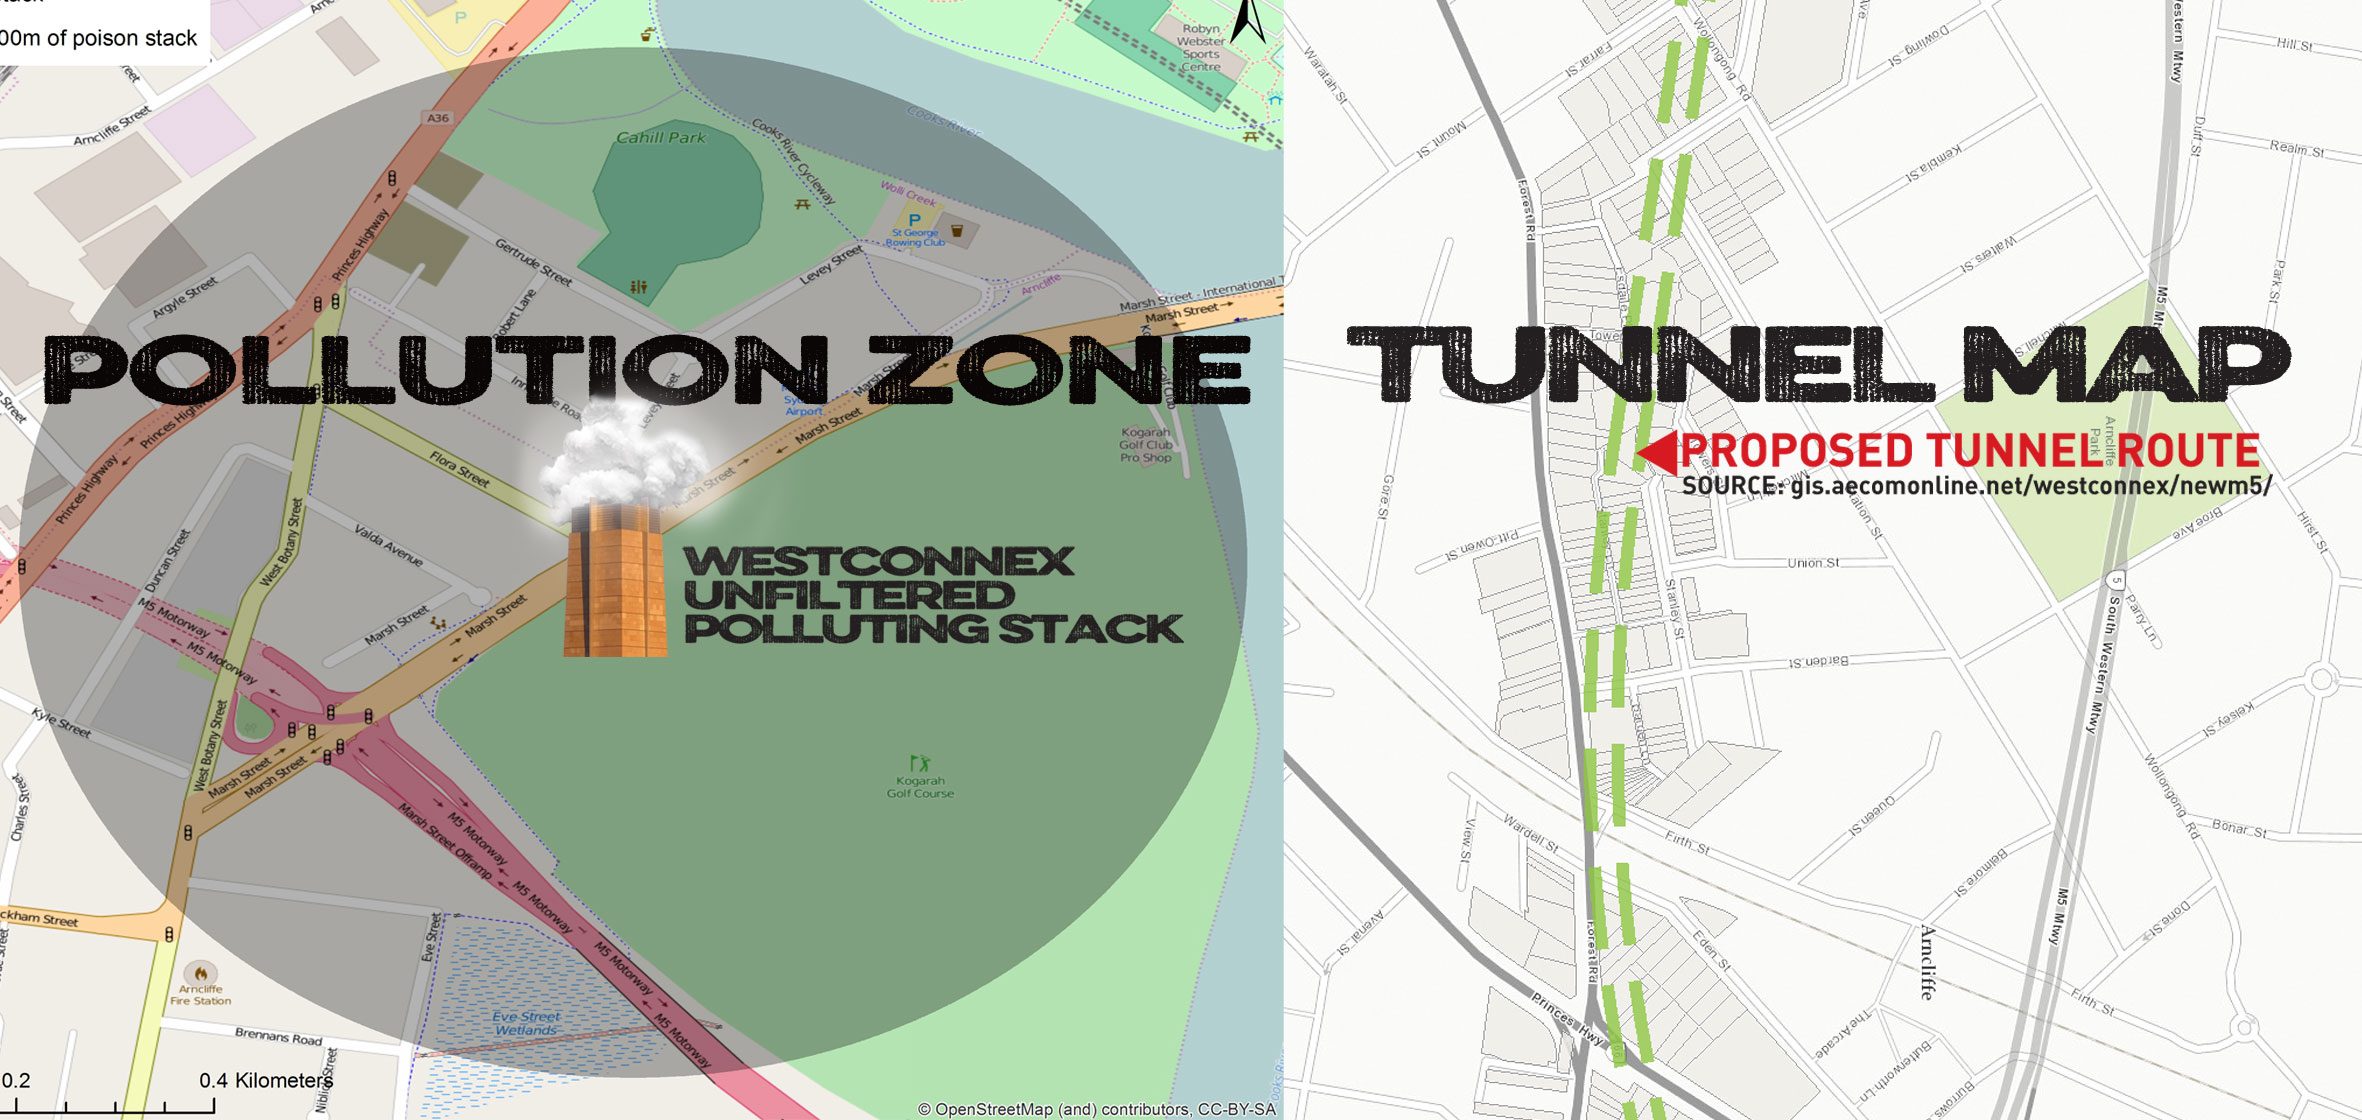 Pollution and tunnel maps